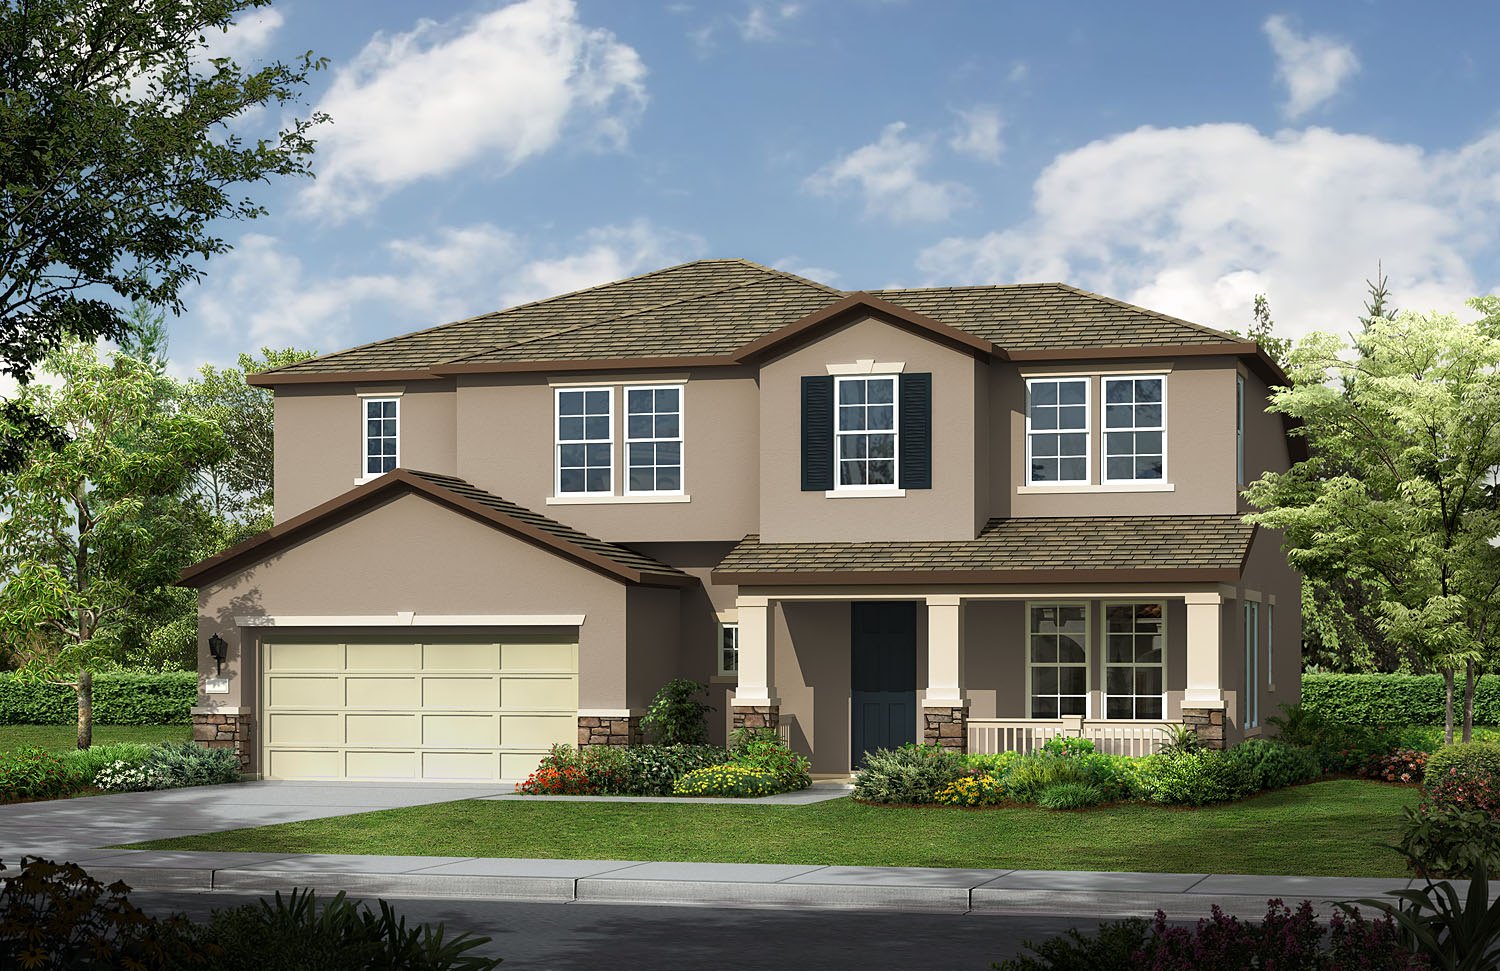 Pulte homes cars news videos images websites wiki for Continental homes of texas floor plans